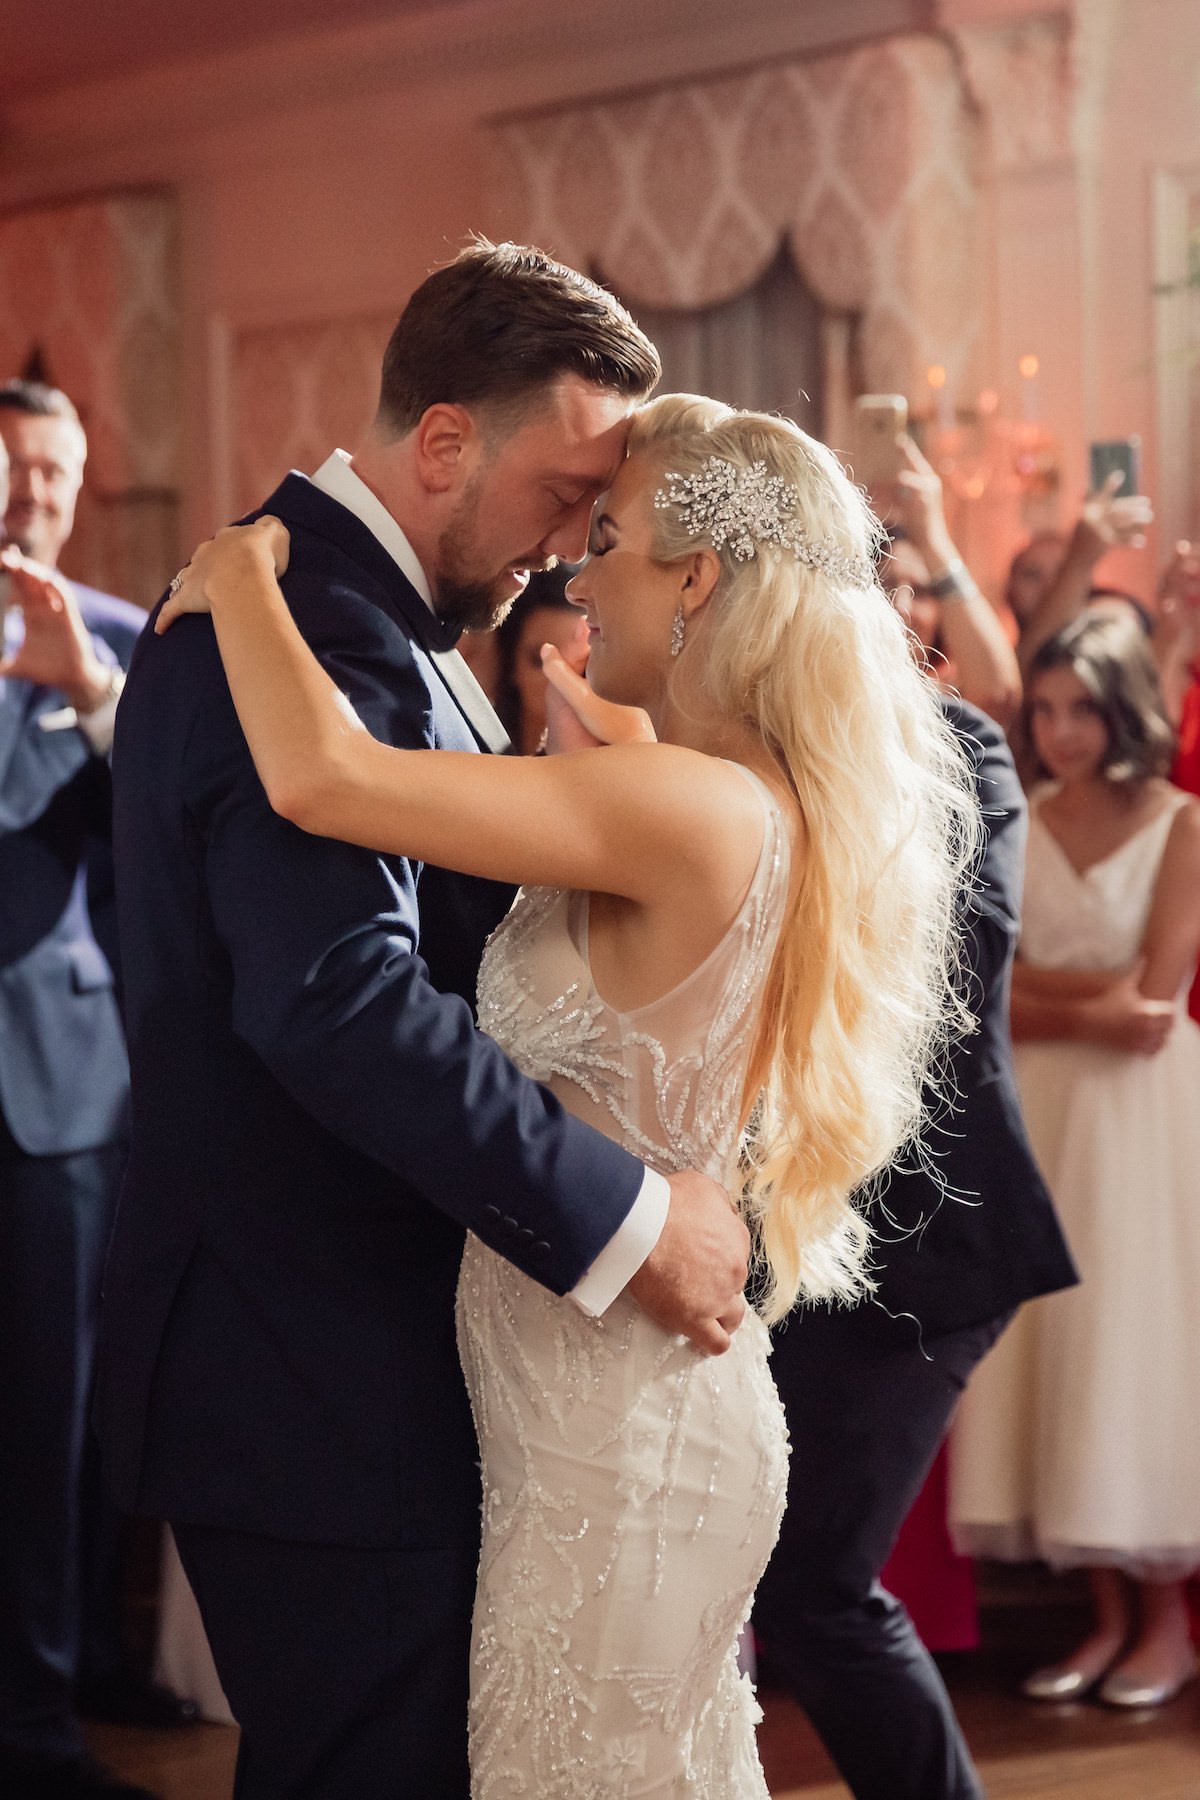 Wedding dance - Photography: Charming Images